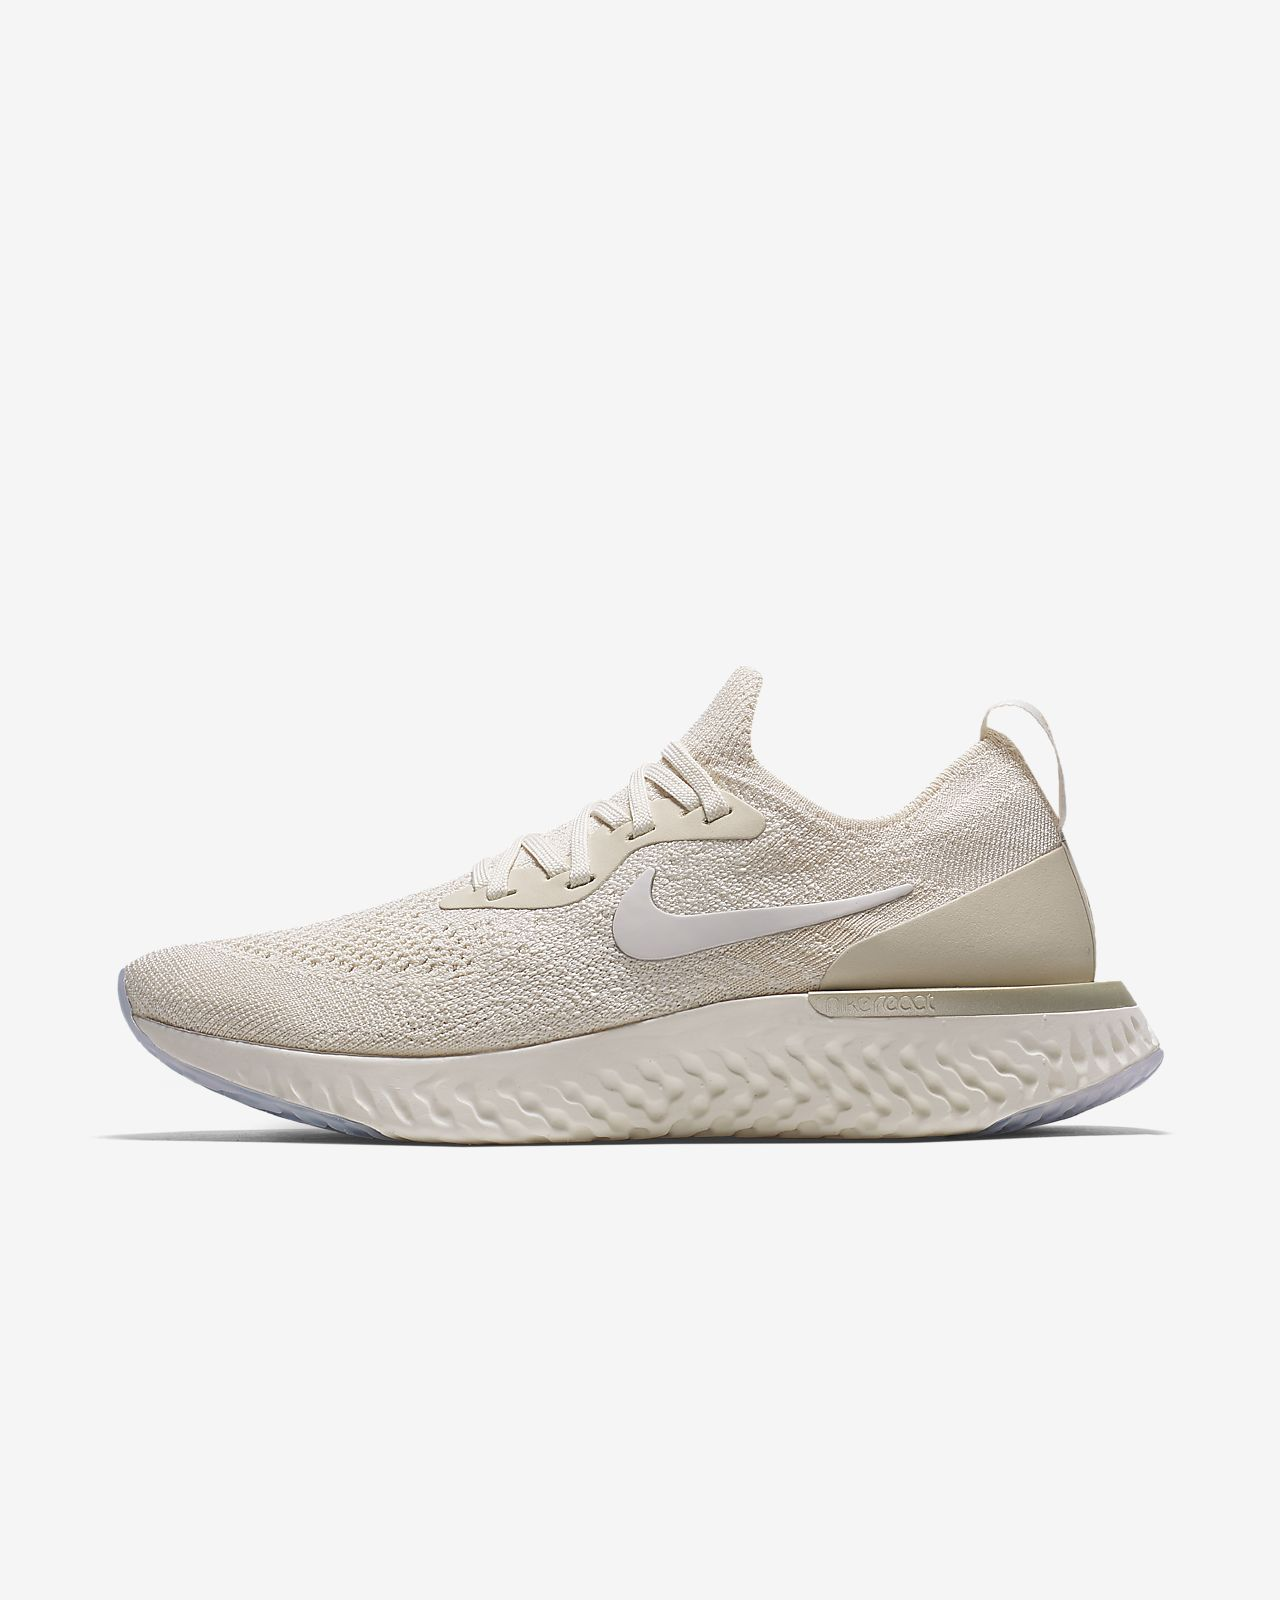 buy good the cheapest great prices nike flyknit 1 womens | Benvenuto per comprare | madeiranetworks.com !